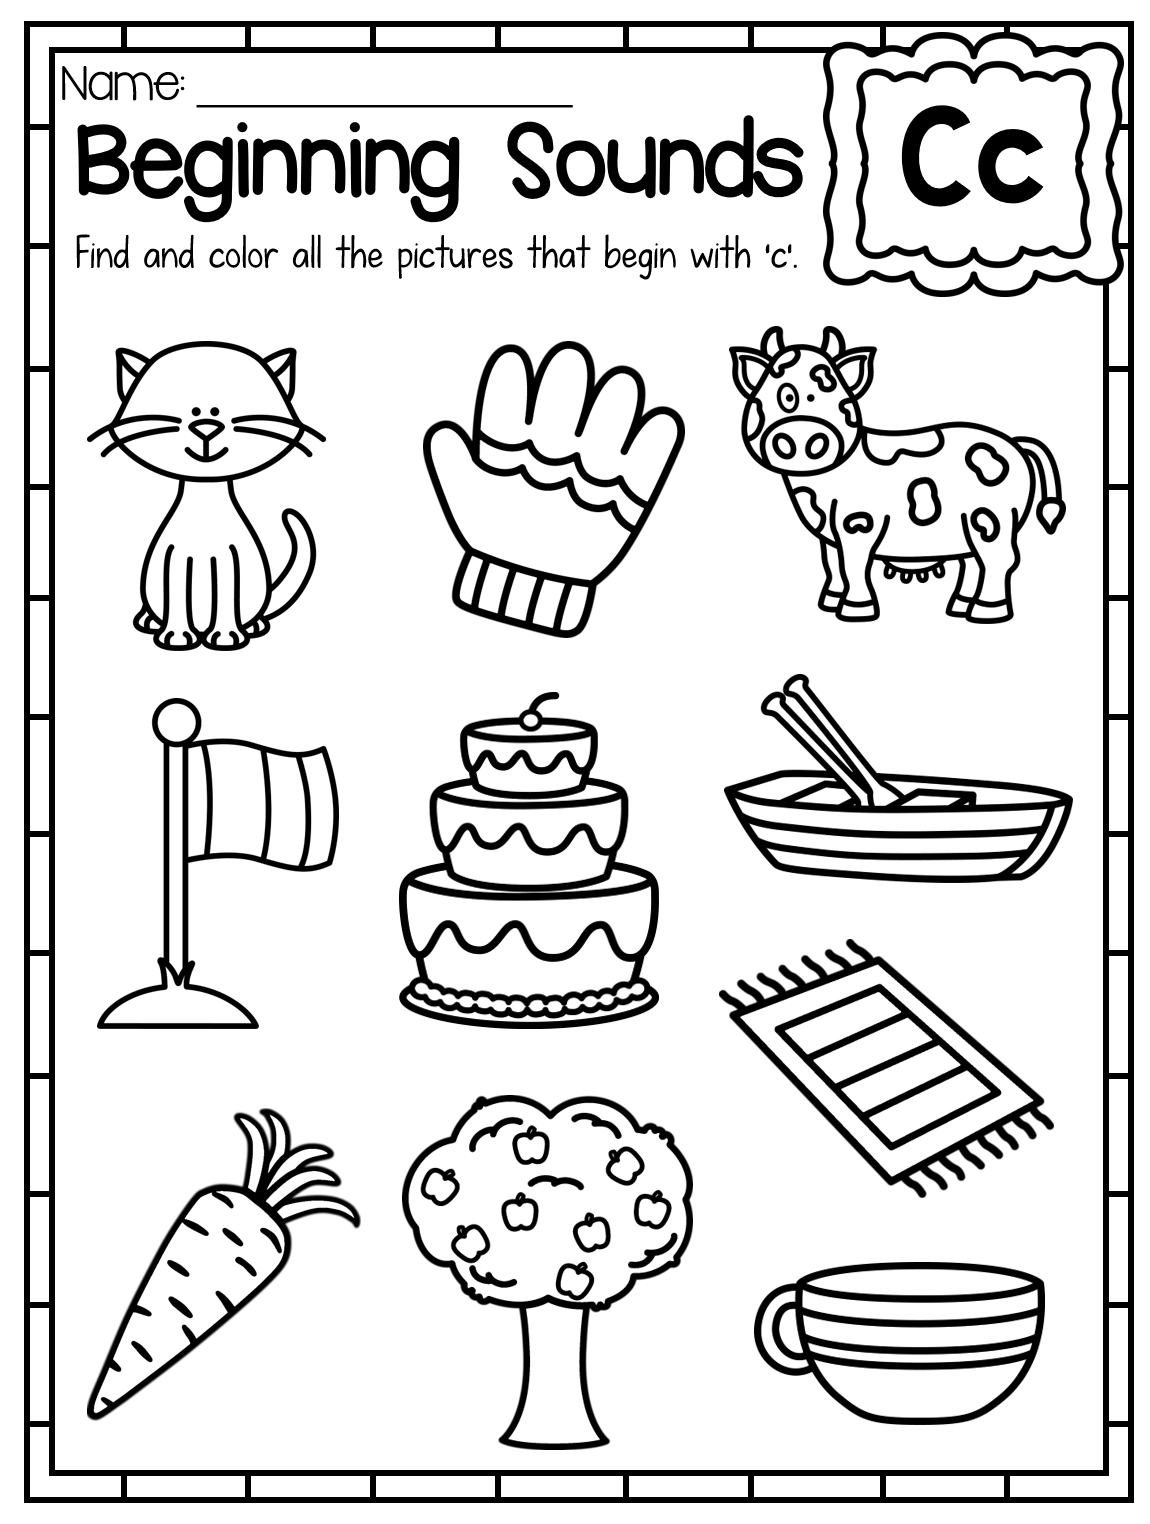 Beginning Sounds Worksheet Letter C These Beginning